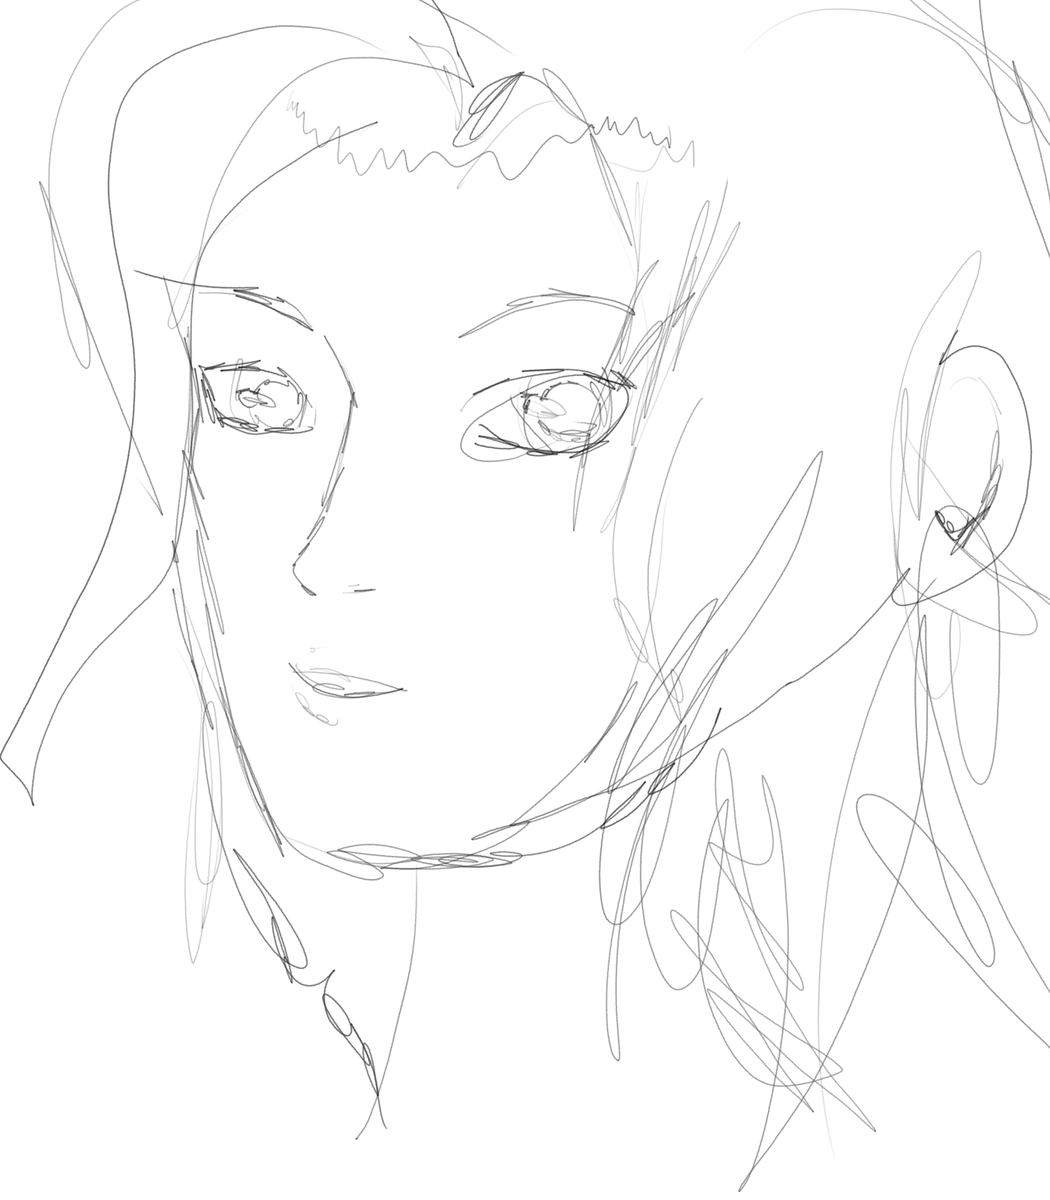 Just a quick face sketch for speed and accuracy. #art #anime #アニメ https://t.co/8jo5PyjmHP